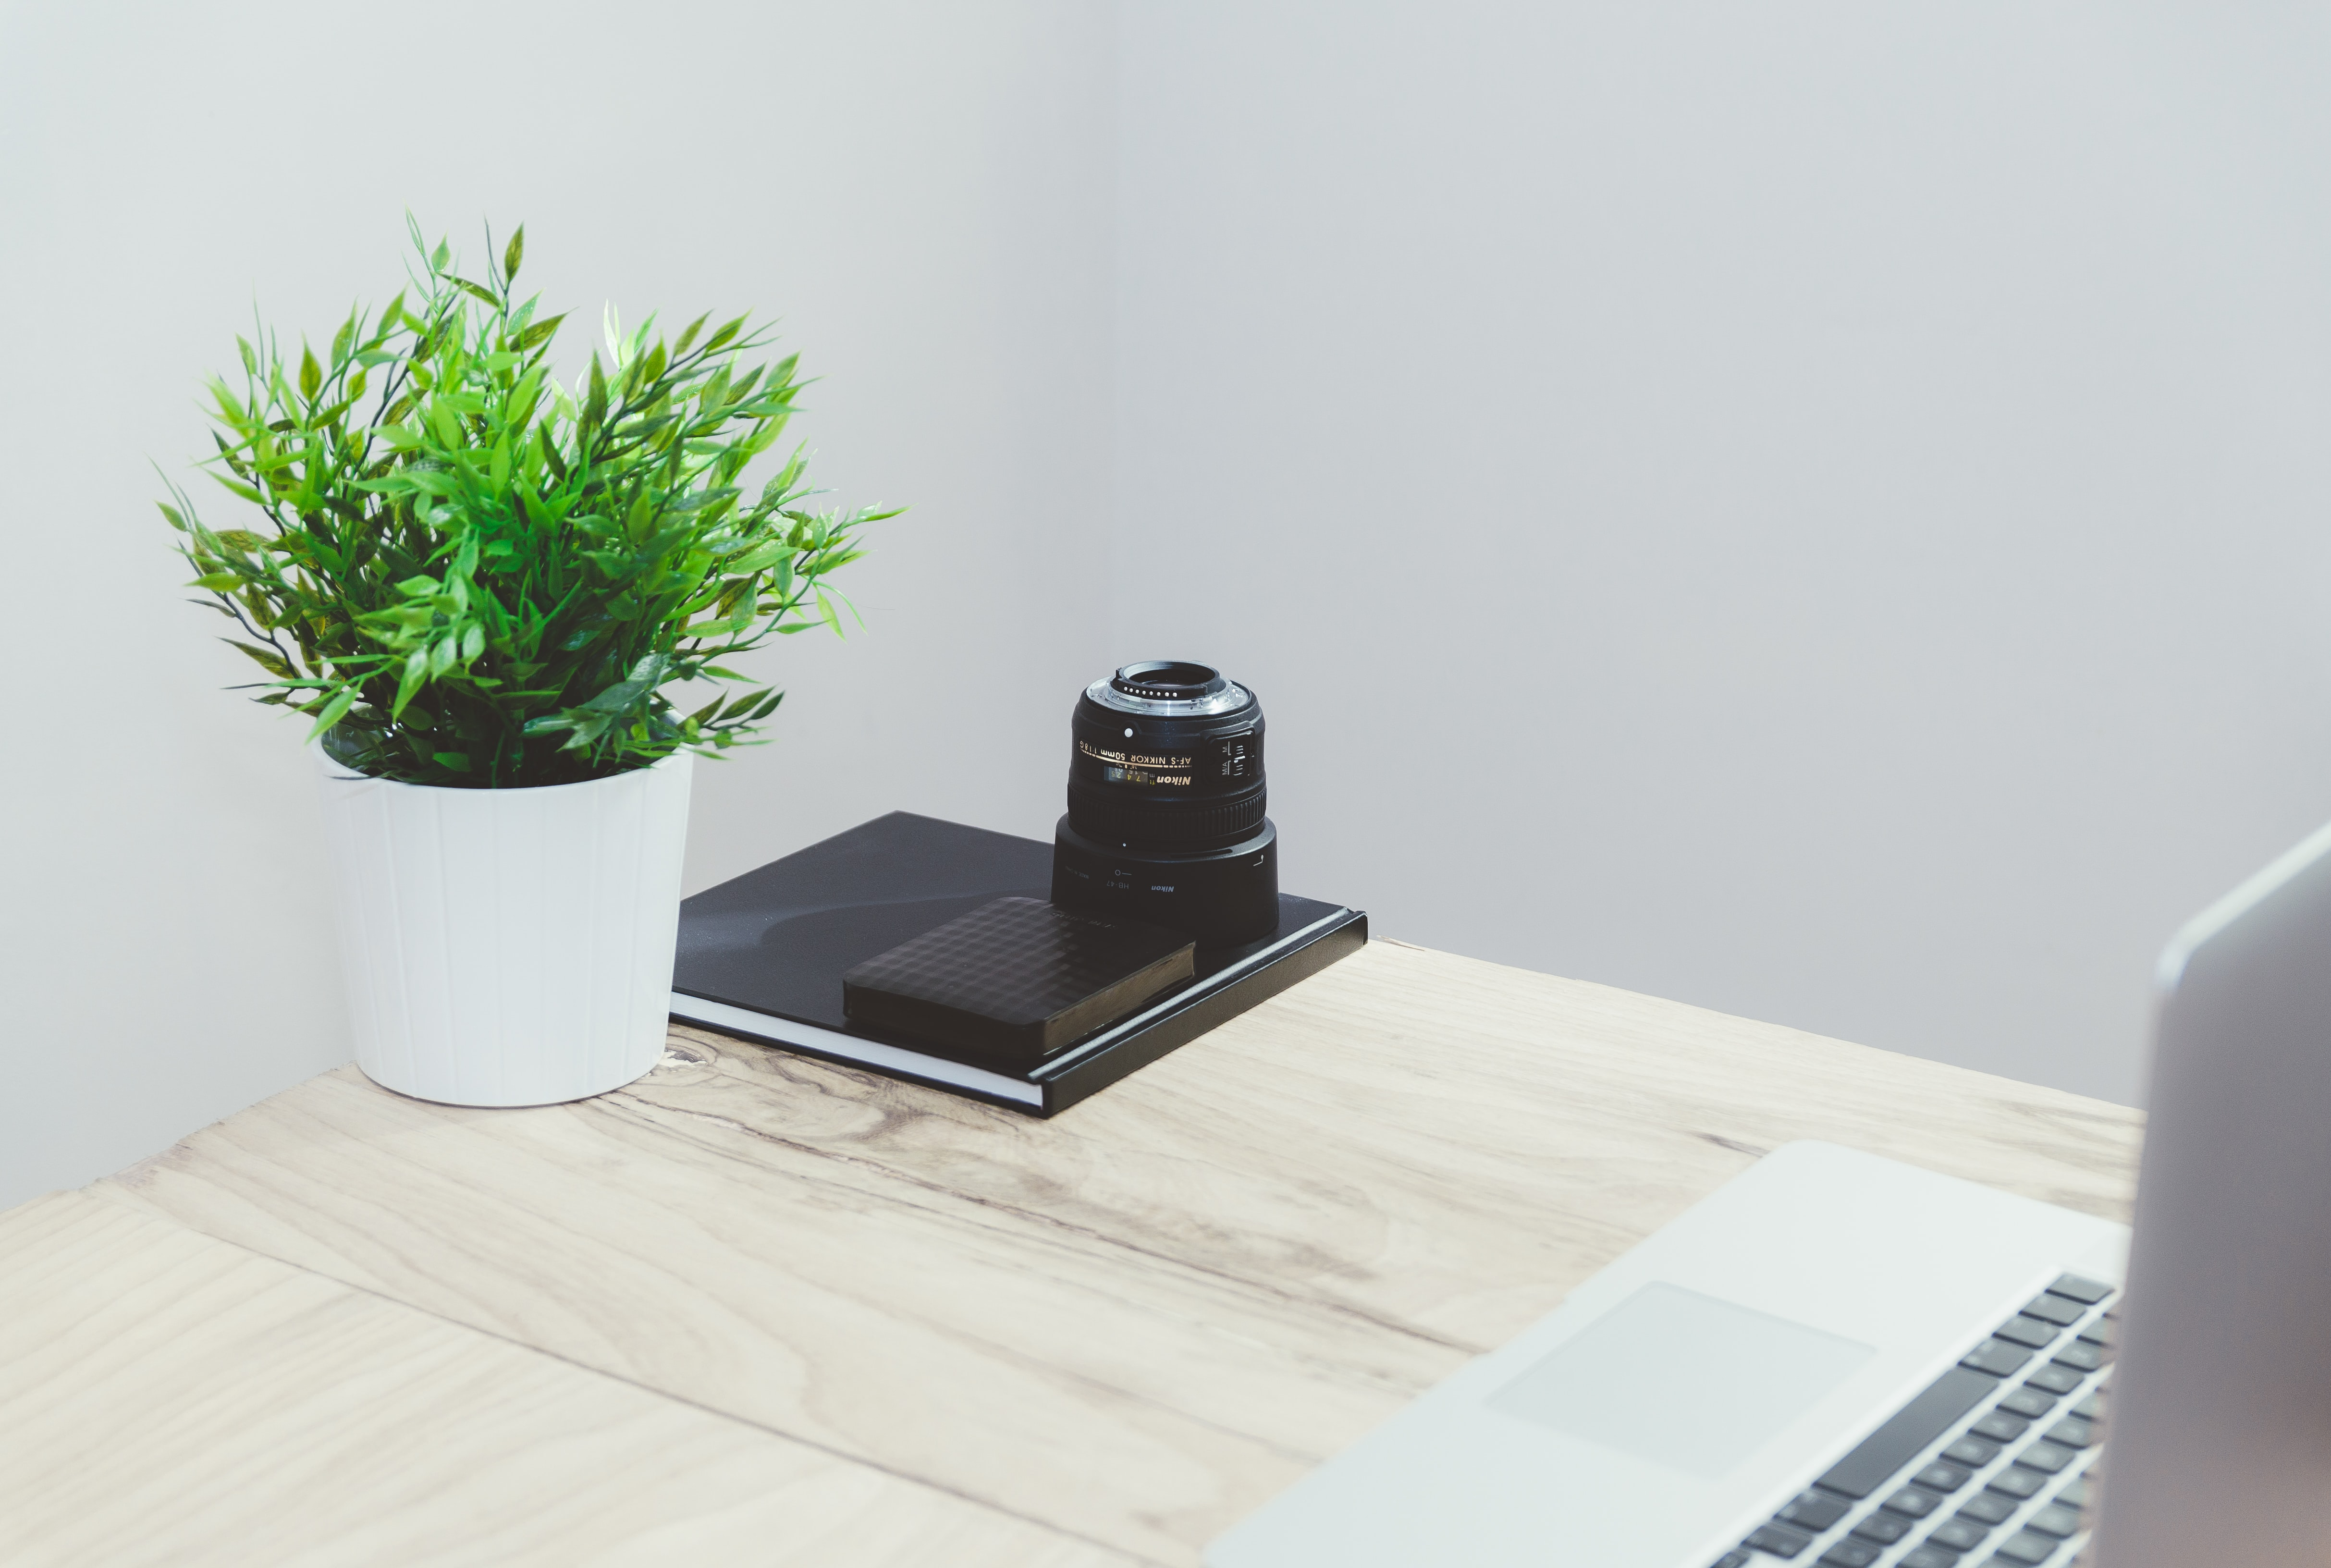 A zoom lens, a portable drive and a notebook at the edge of a table next to a potted plant